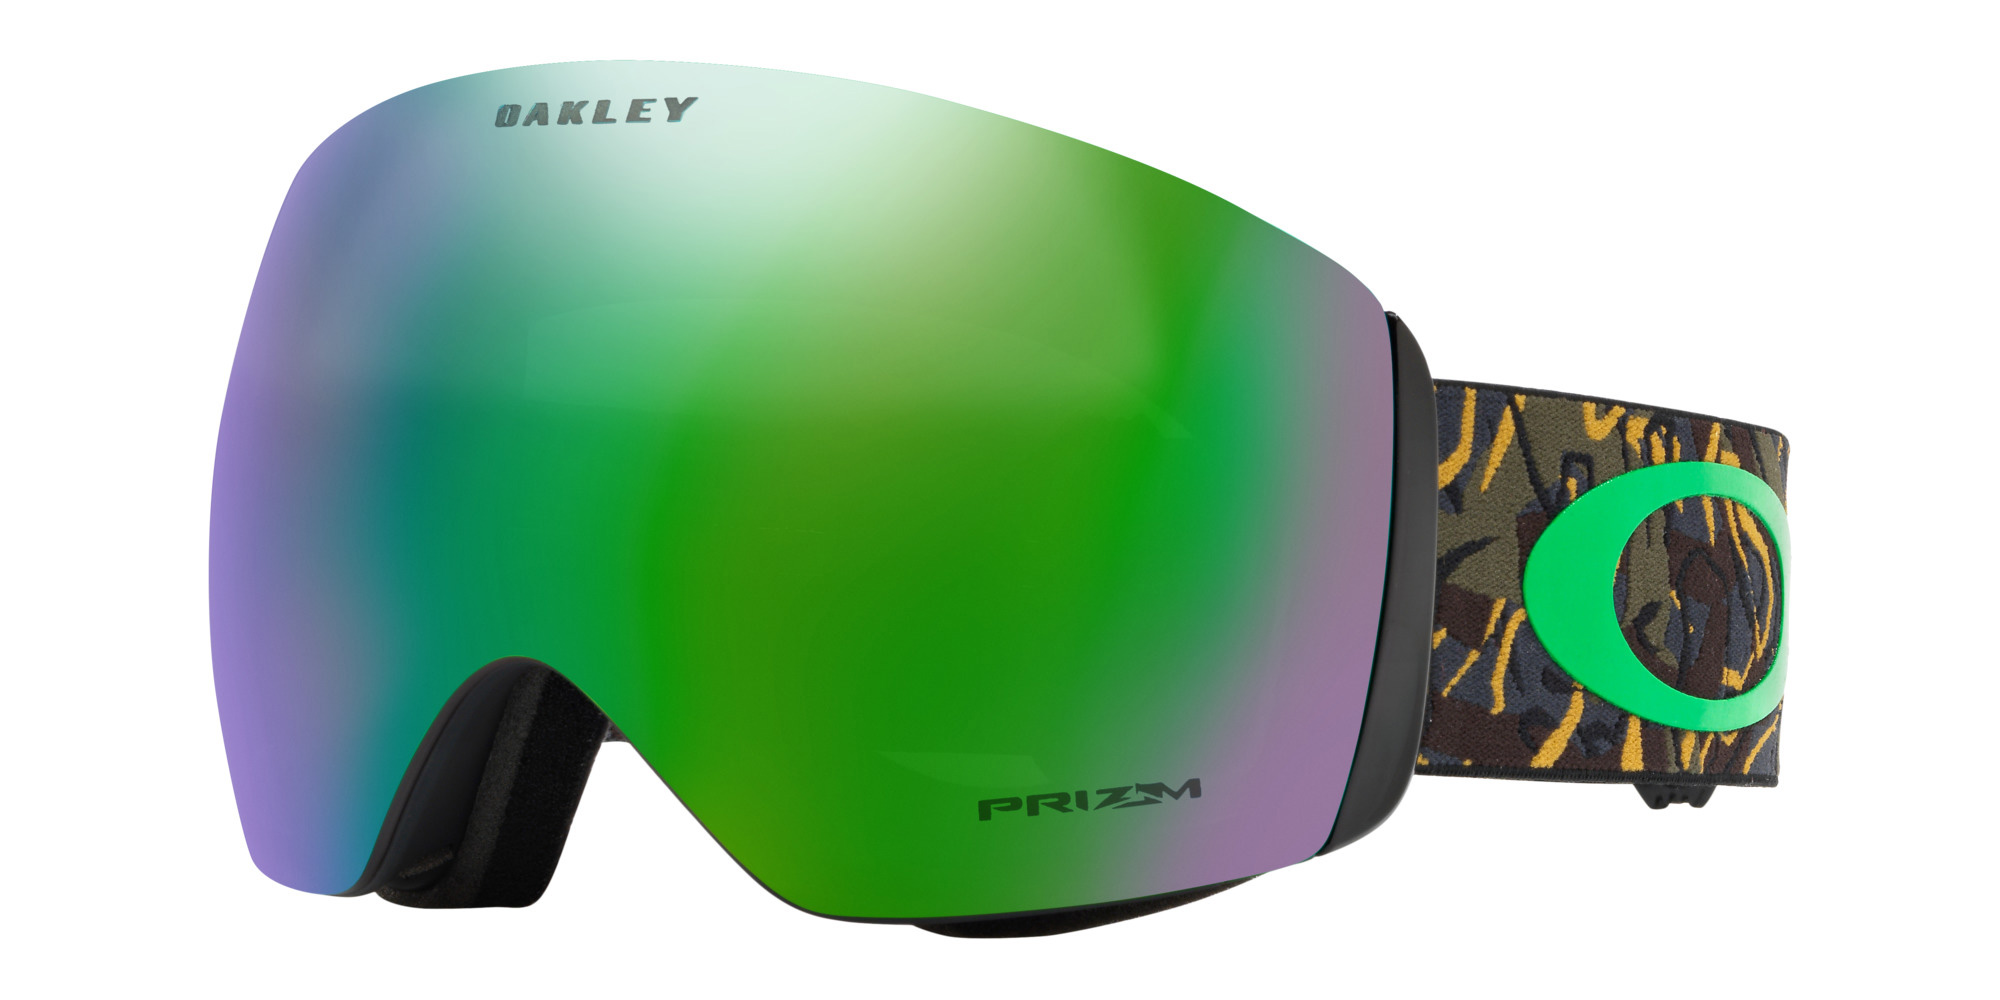 c8028f0c8f Oakley Products at The Board Basement